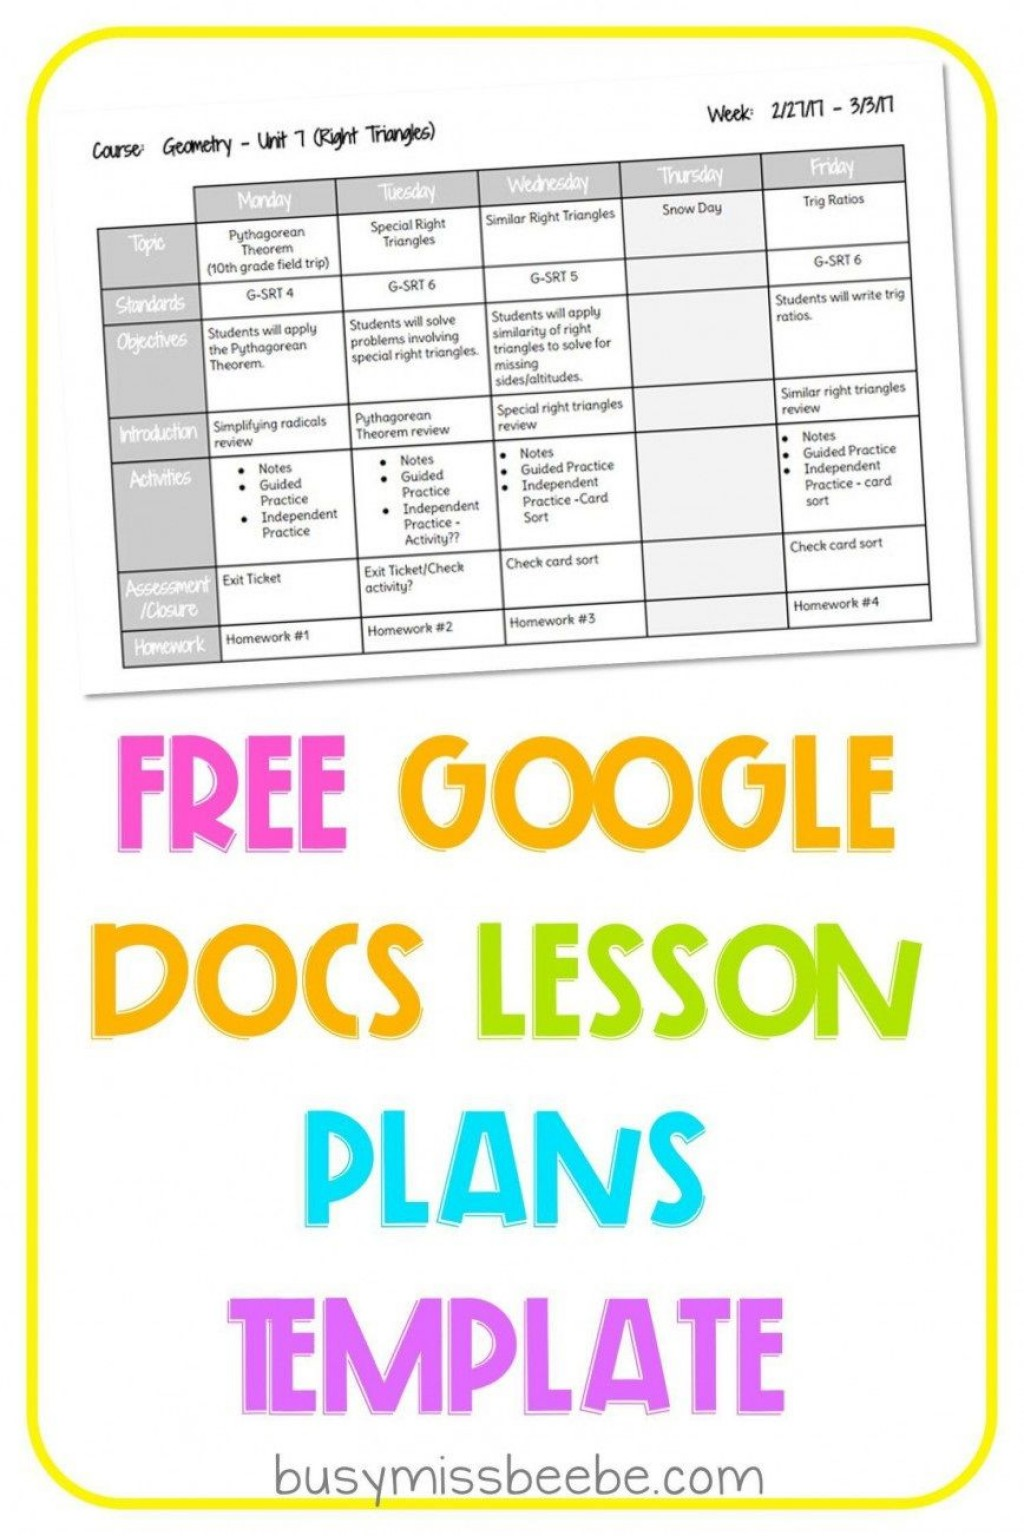 009 Impressive Weekly Lesson Plan Template Google Doc High Def  Docs 5e SimpleLarge